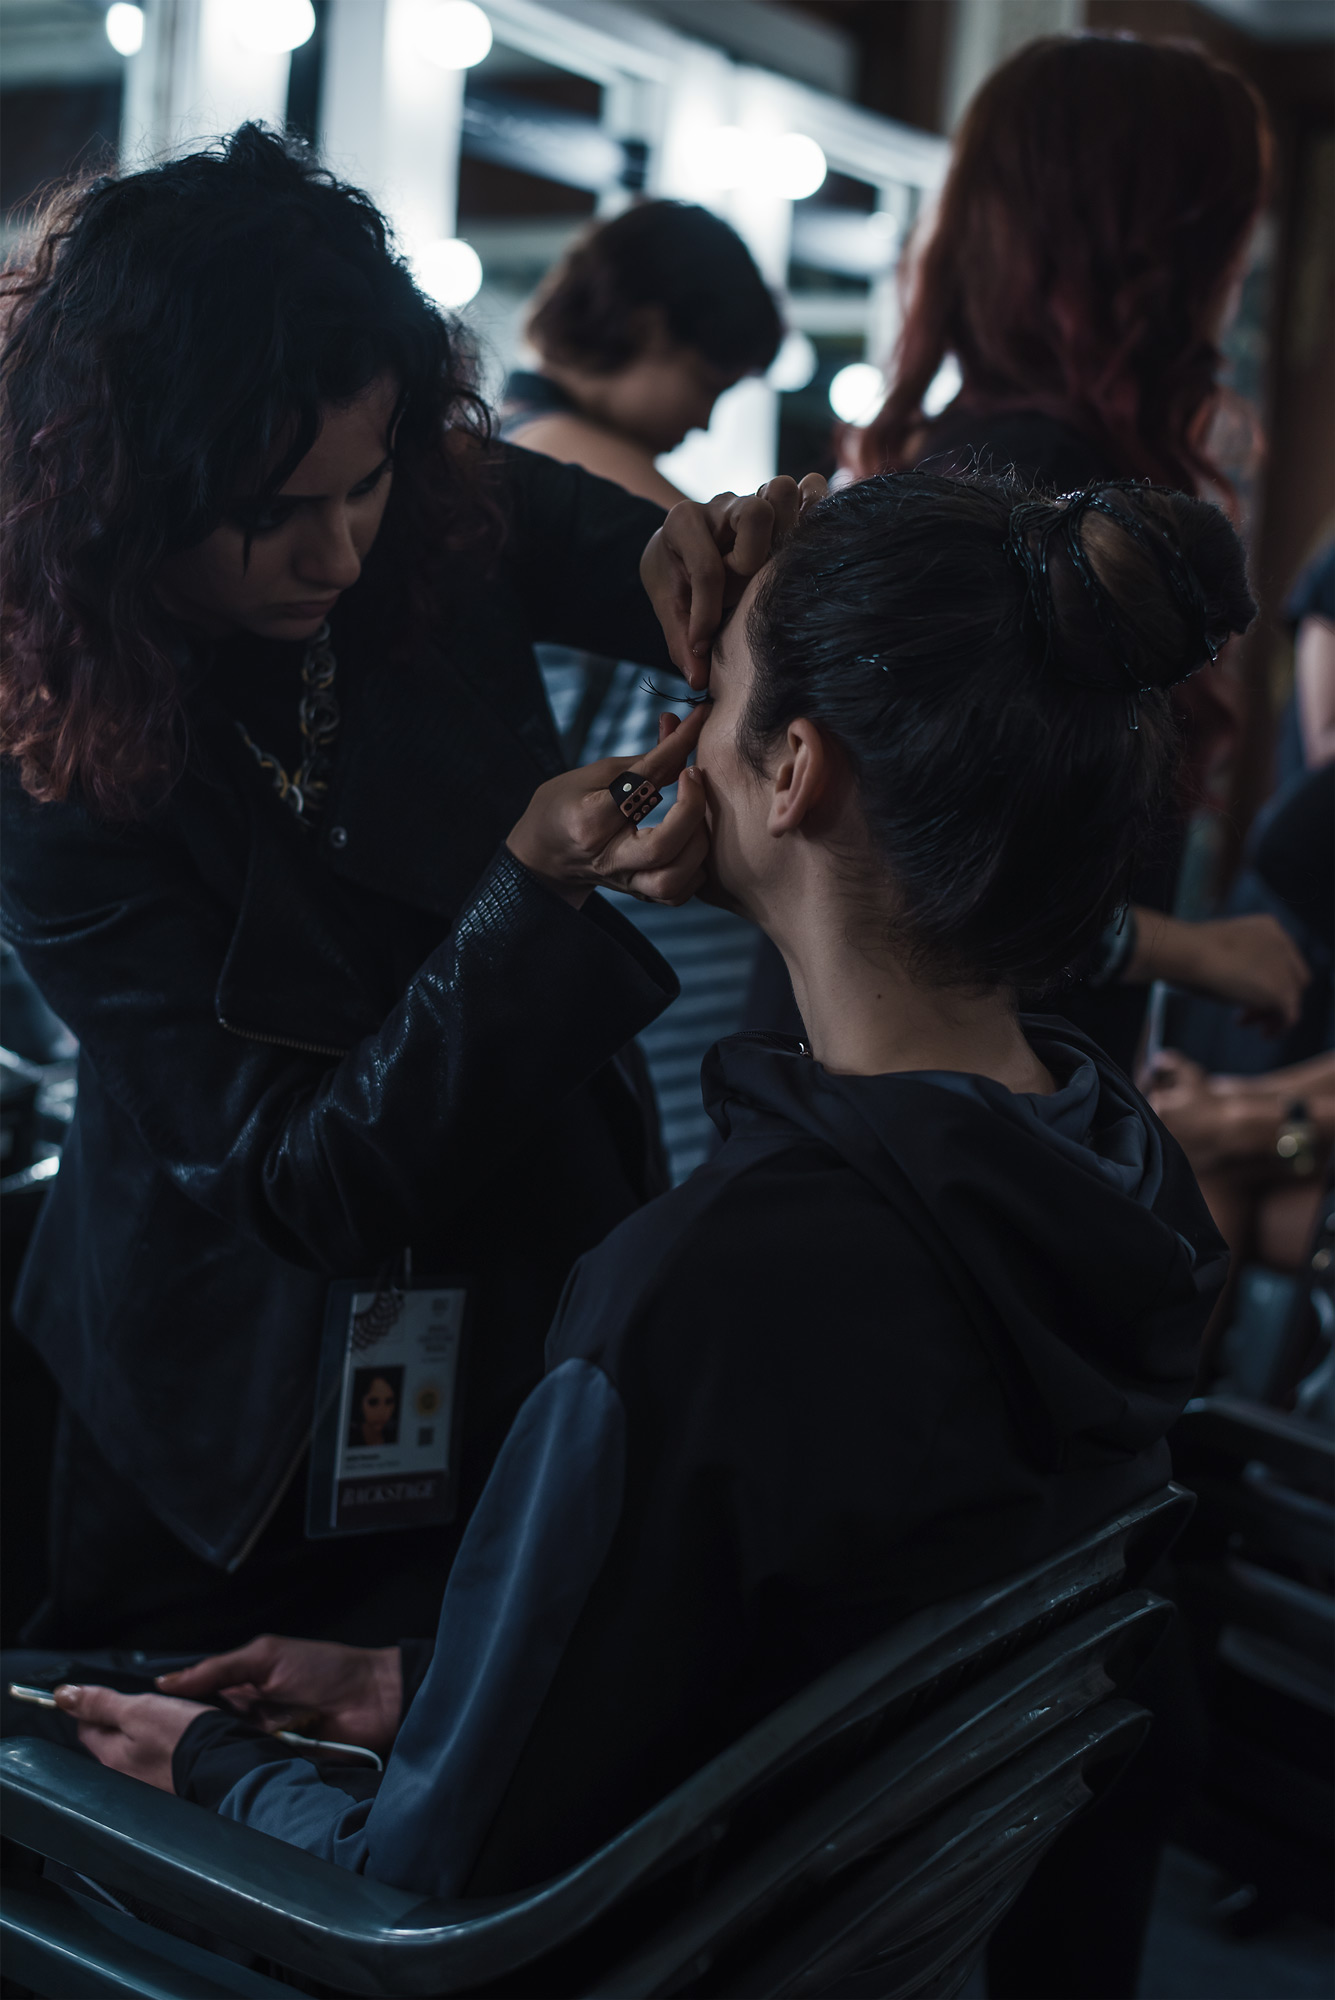 M.A.C. Backstage FDCI India Couture Week 2016 Photo by RAWKY KSH 1